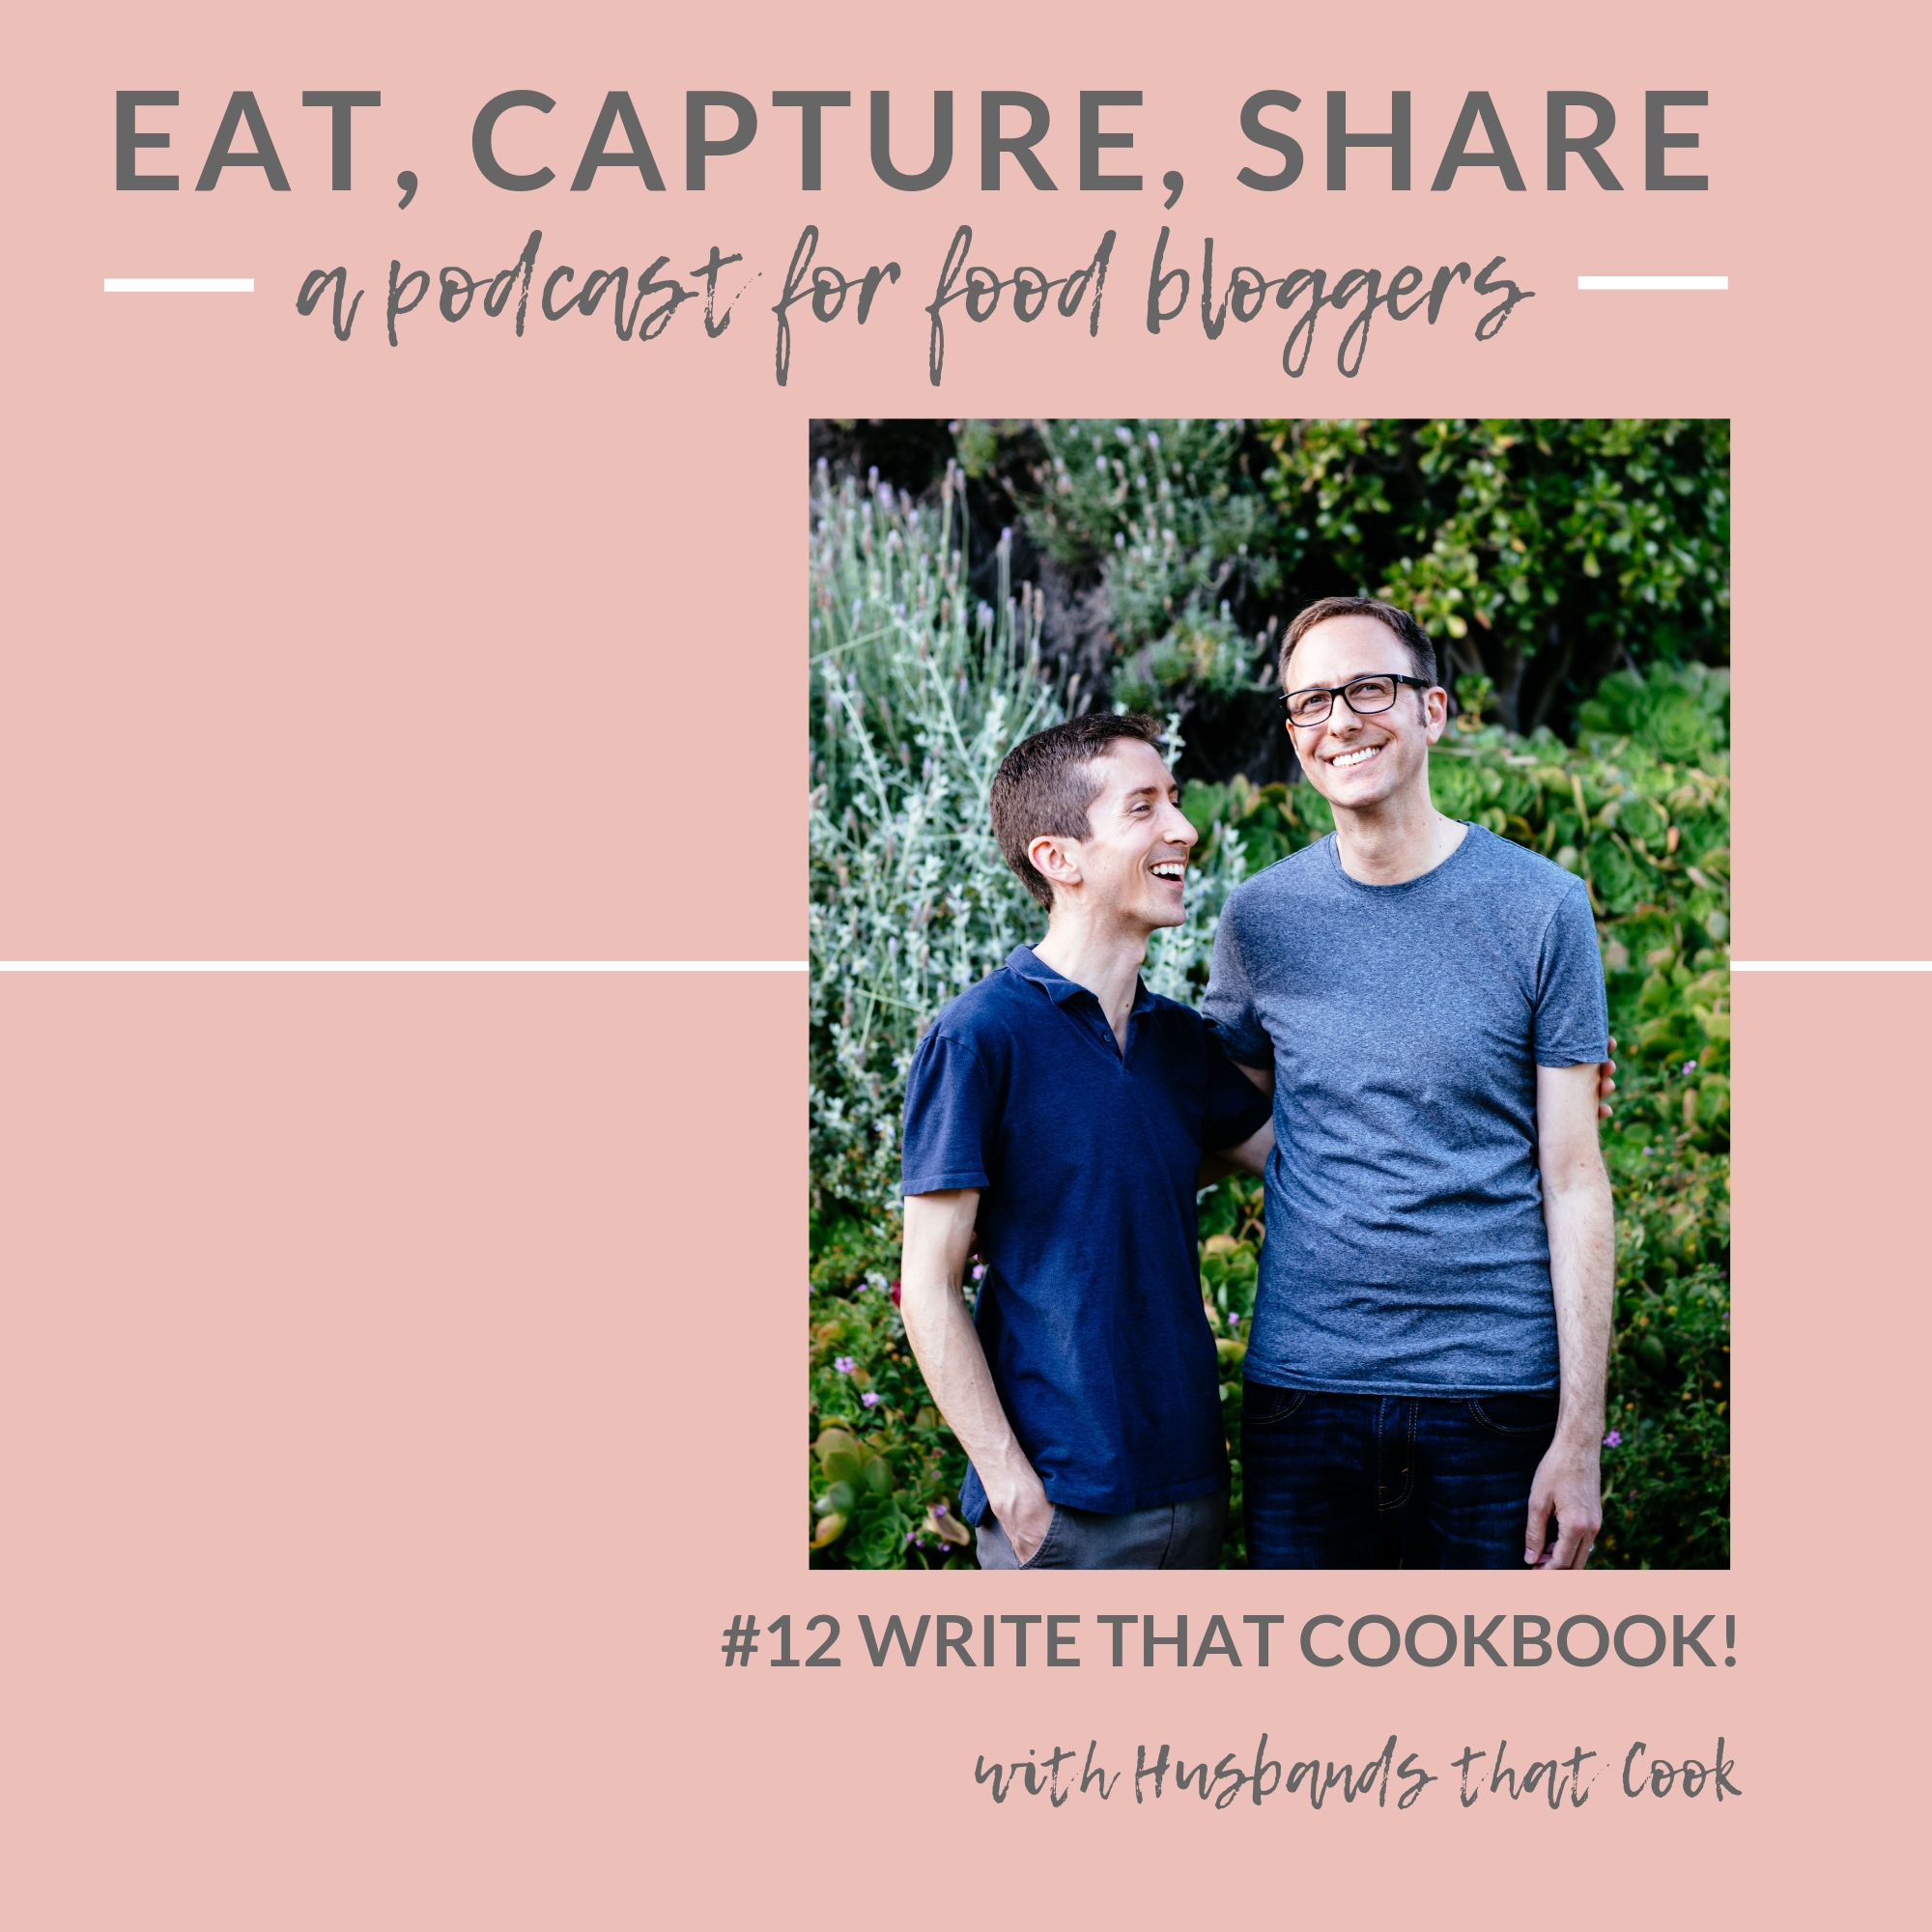 How to write a cookbook - Eat, Capture, Share Podcast episode 12